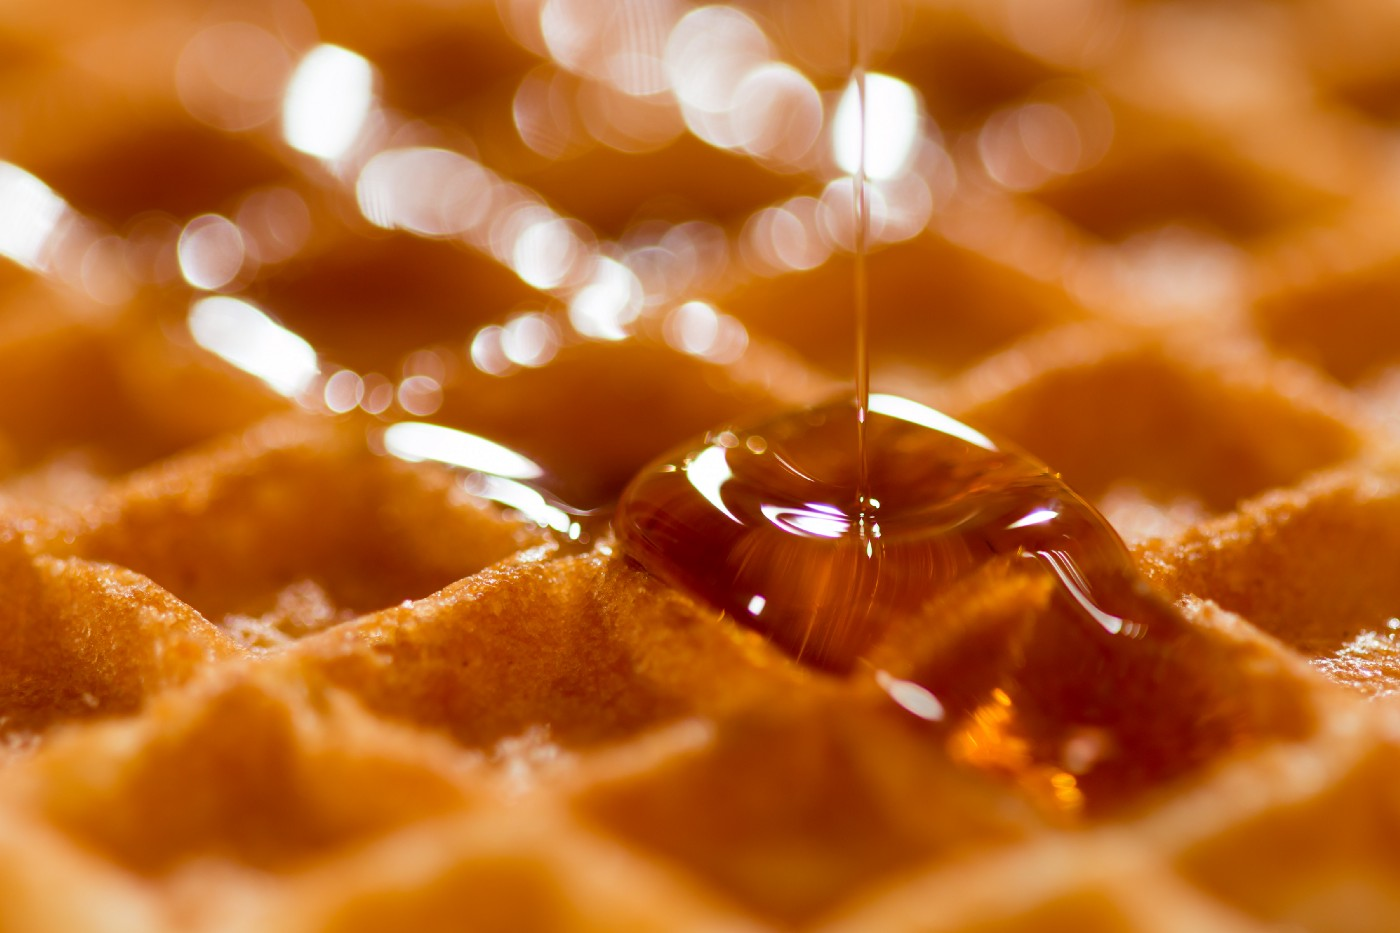 close up photo of waffle with syrup being poured on it